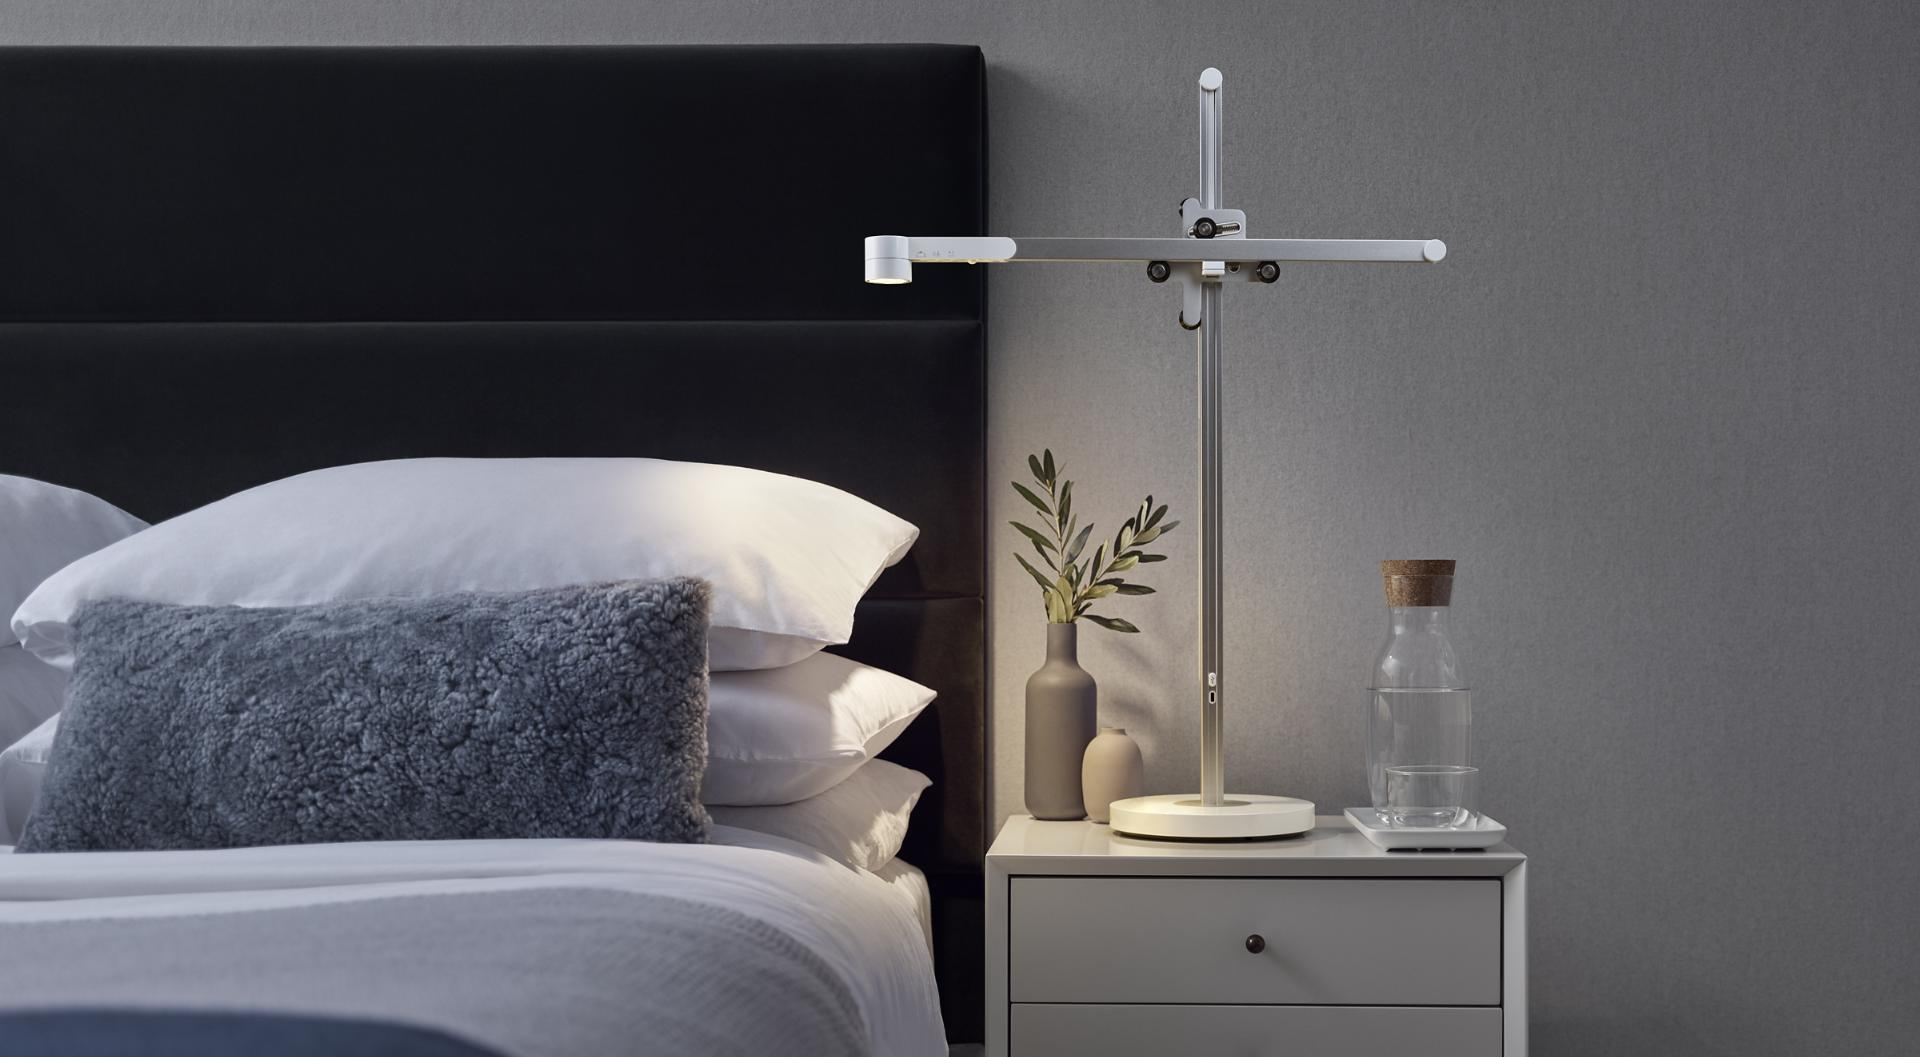 Dyson Lightcycle task light on a bedside table